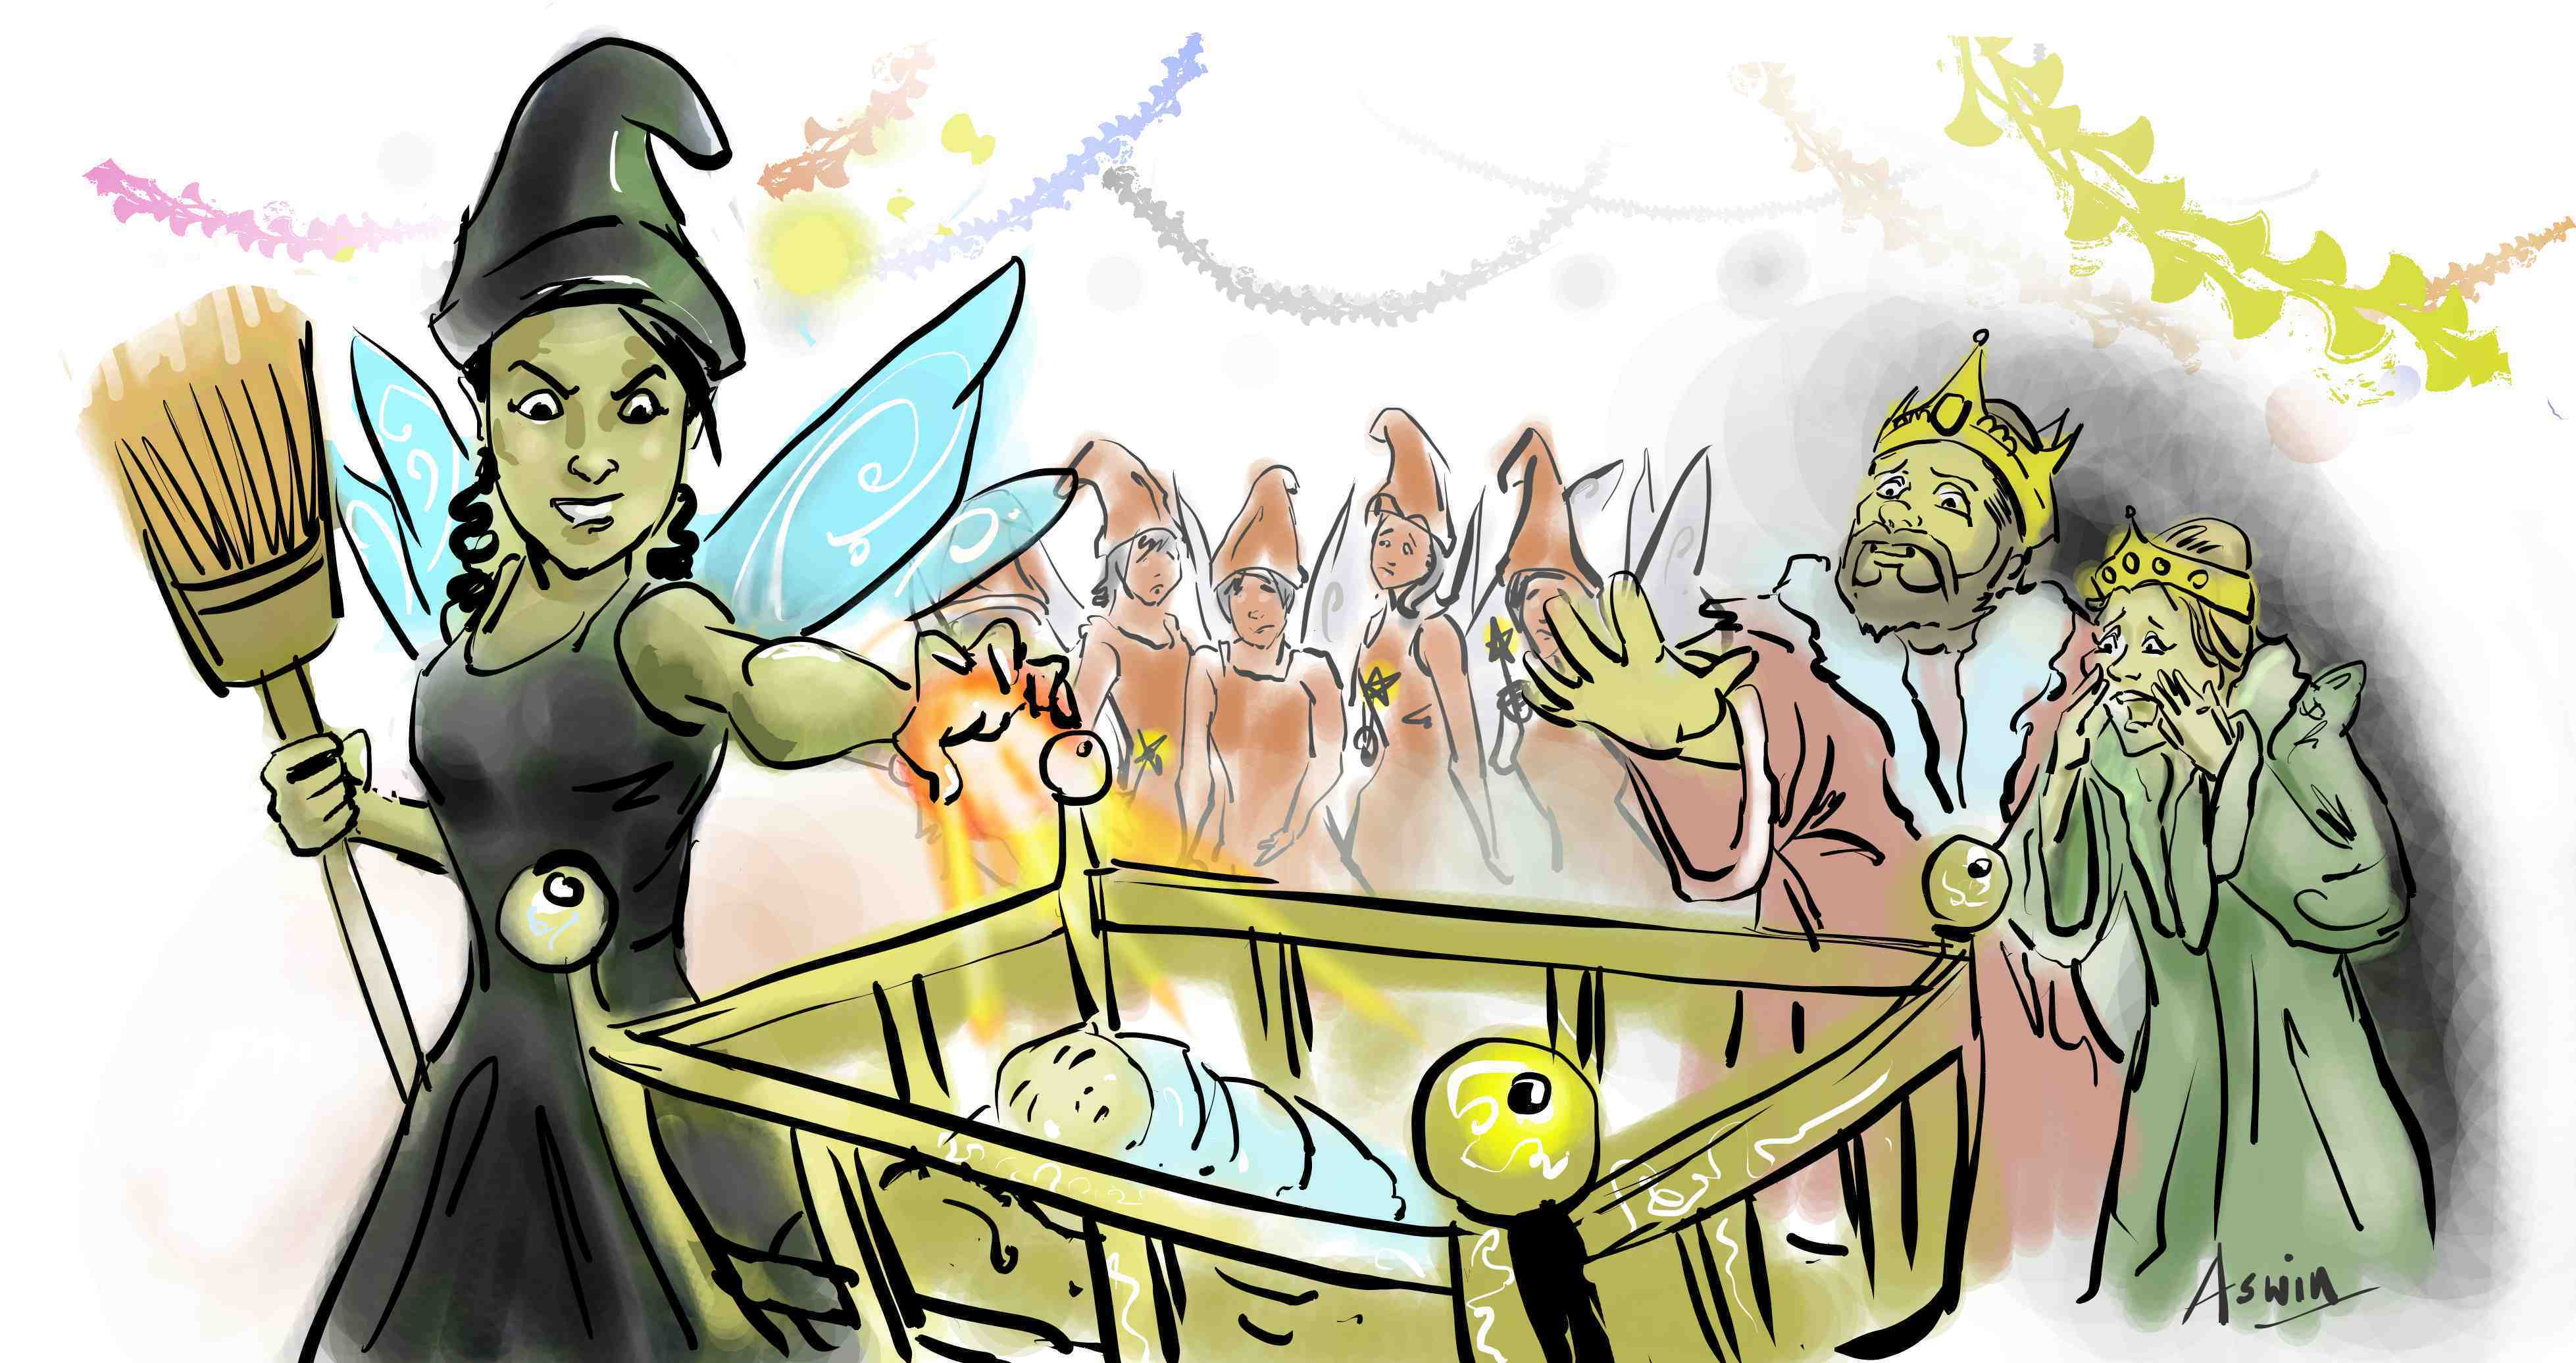 Disgruntled fairy dressed in black casts spell on Sleeping Beauty who is lying in cot. Anguished king and queen in background with other good fairies.